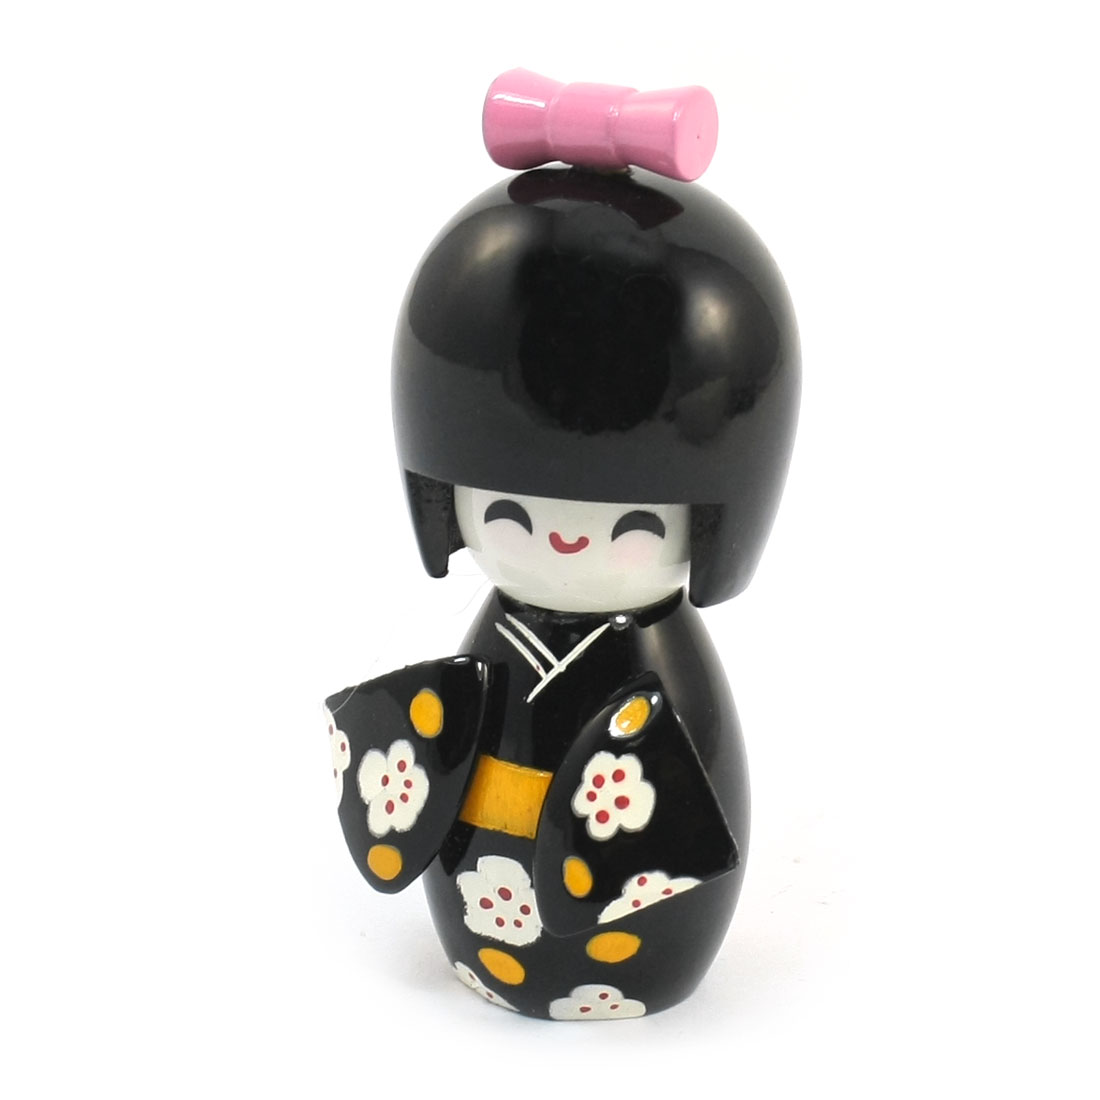 Table Decor Japanese Style Flower Pattern Wooden Craft Doll Black